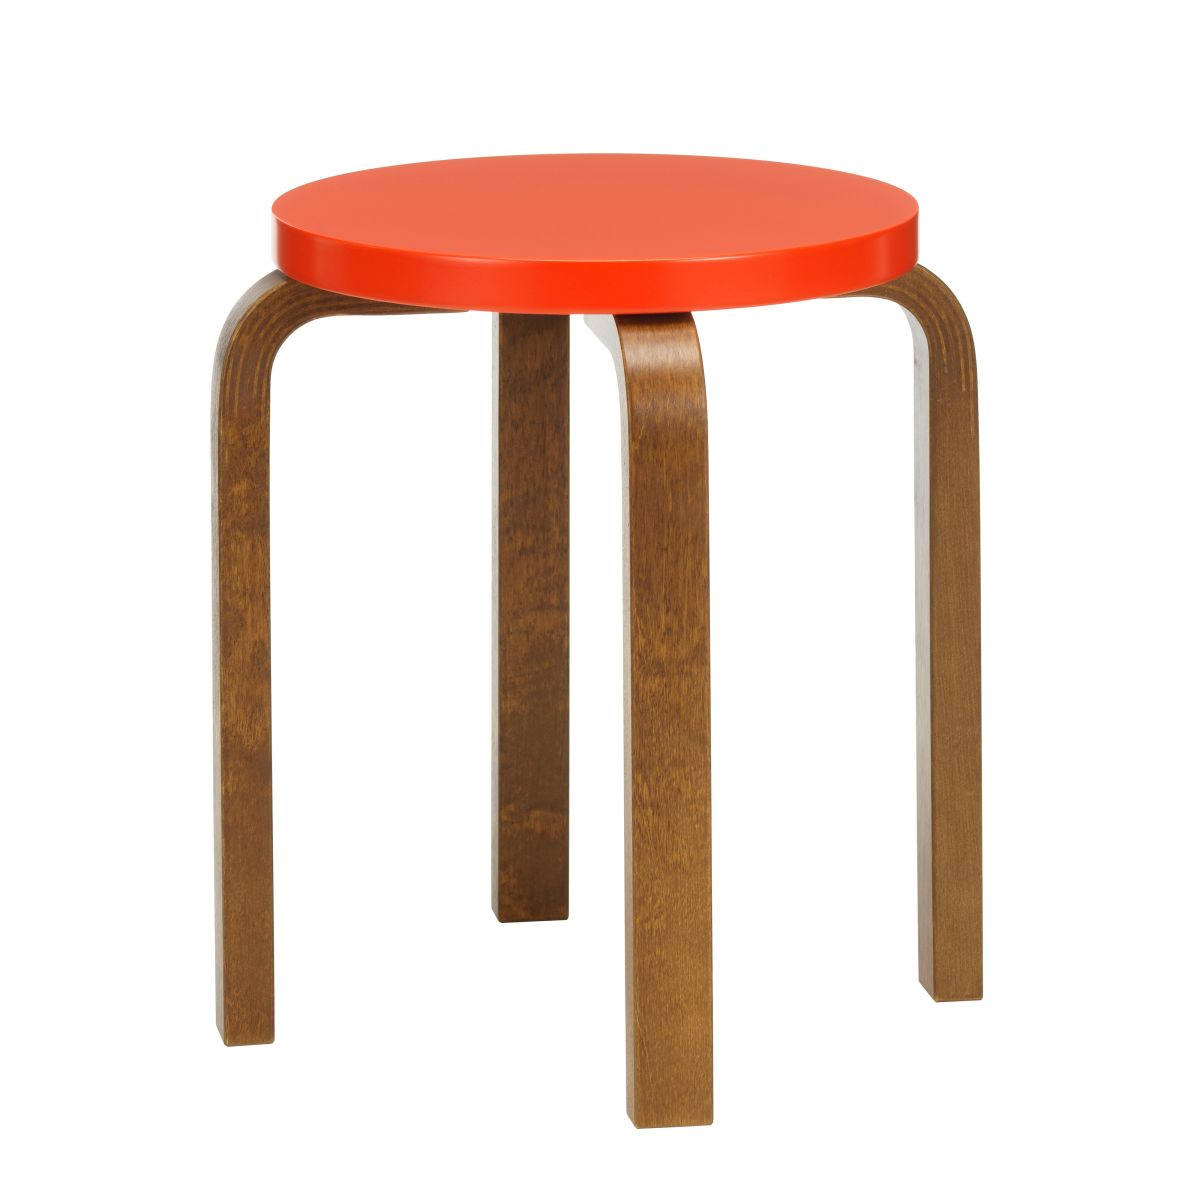 Stool_E60_walnut_stain_bright_red_lacquer_F